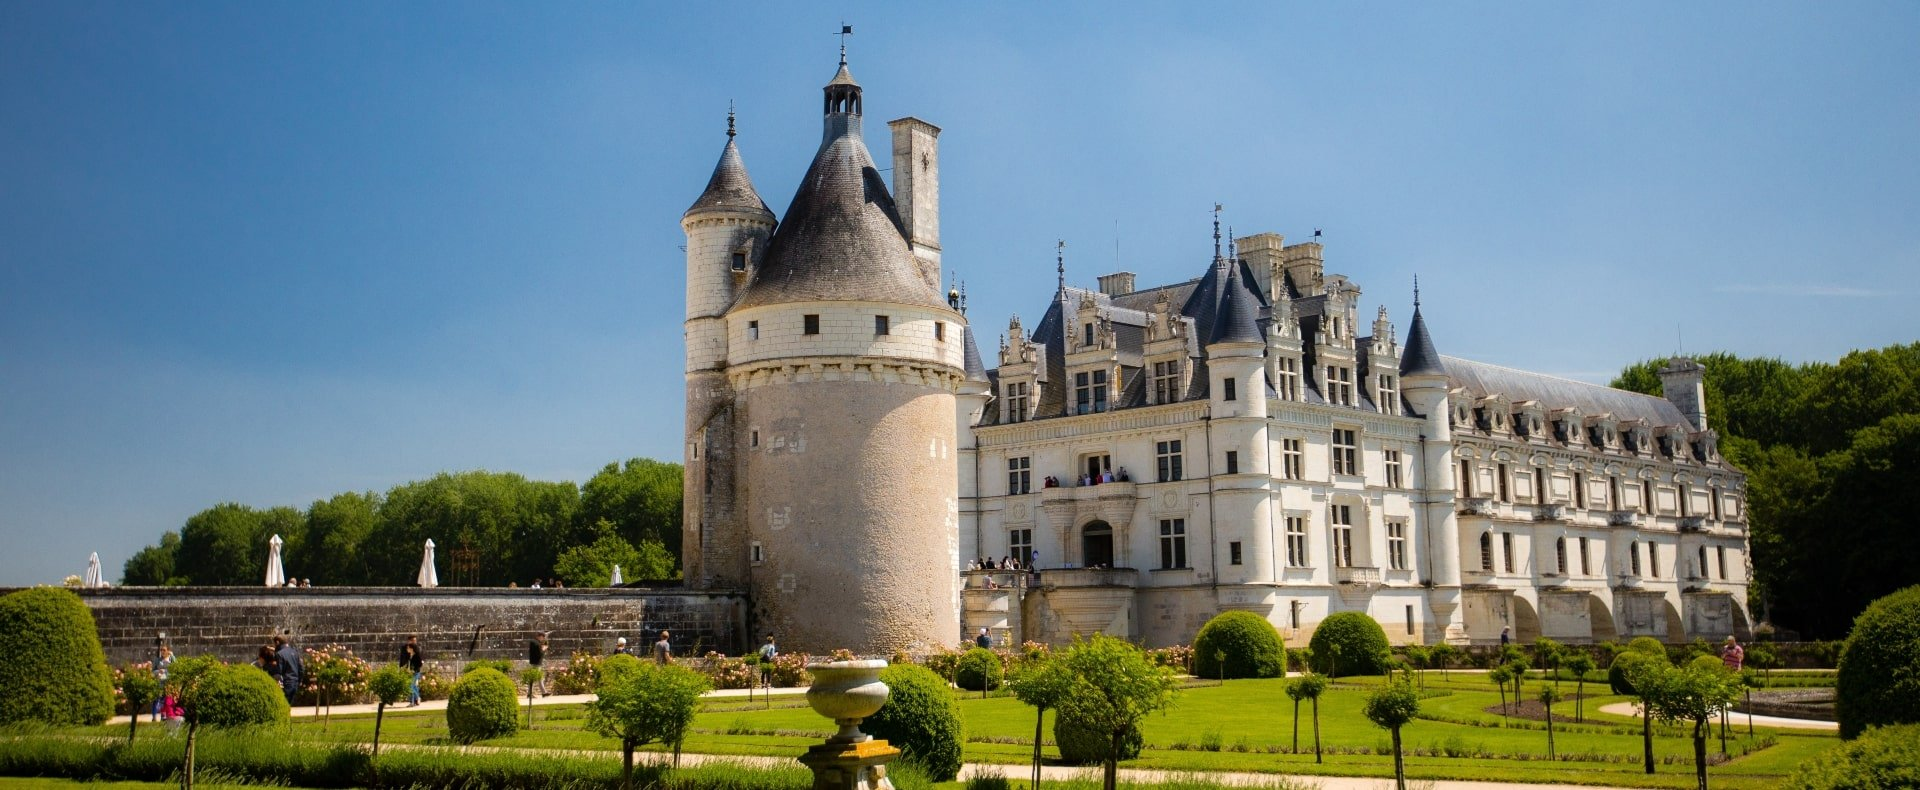 Chateau de Chenonceau Experience Gallery